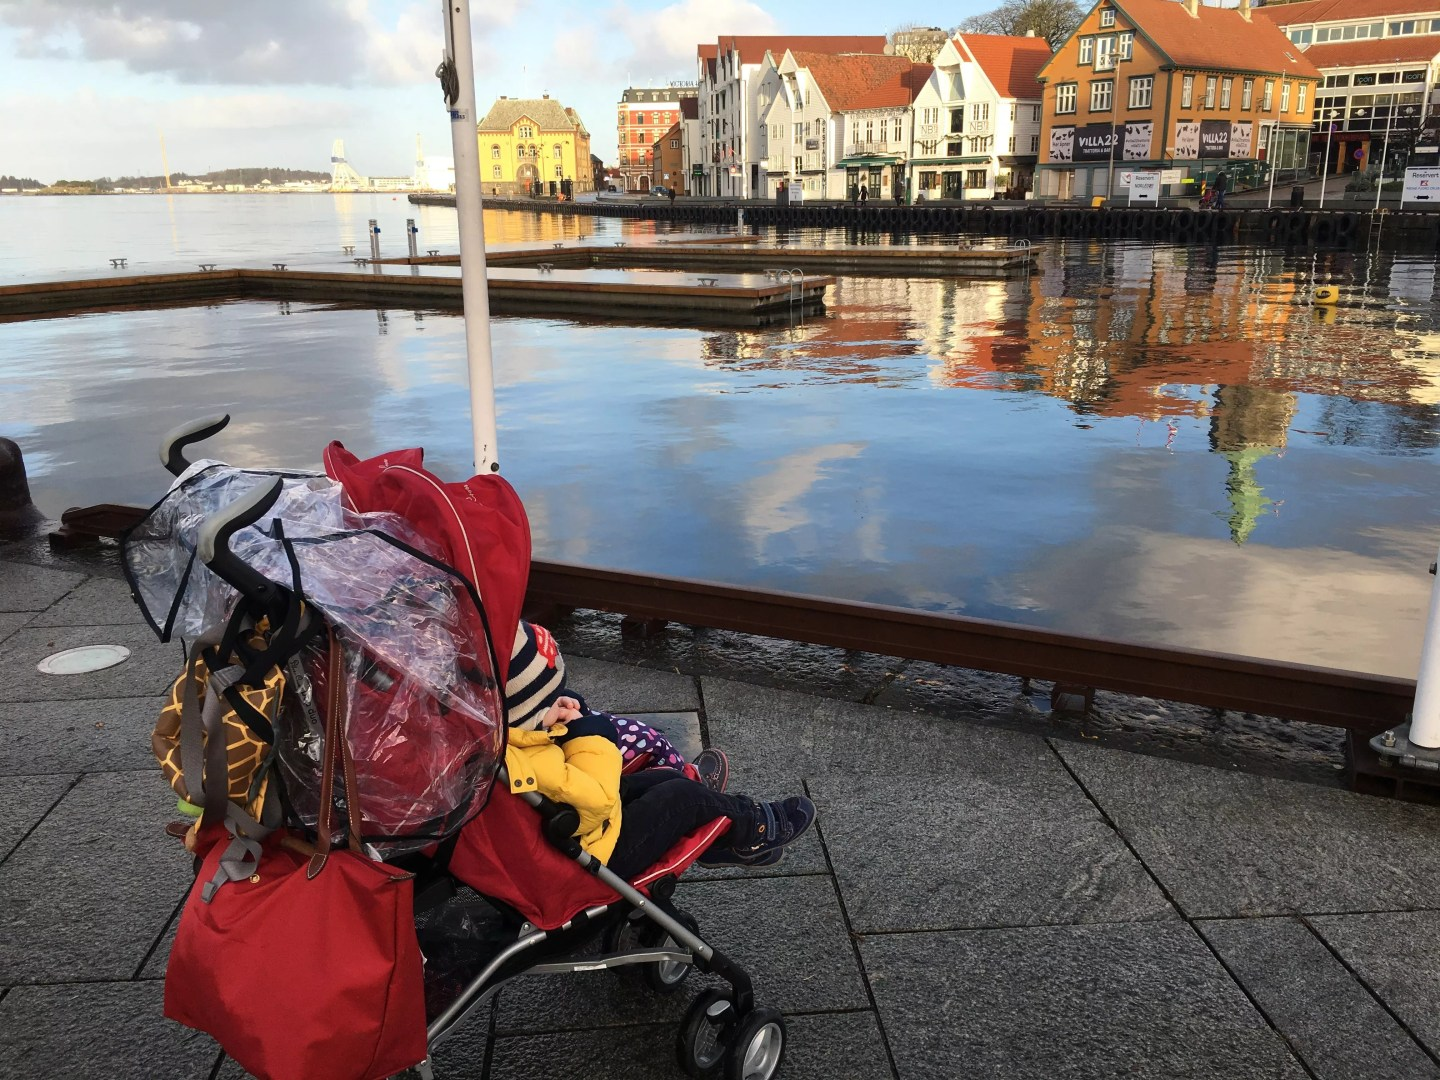 adventures of a gluten free globetrekker Things To Do With Kids in Stavanger (in Winter) Travel with kids